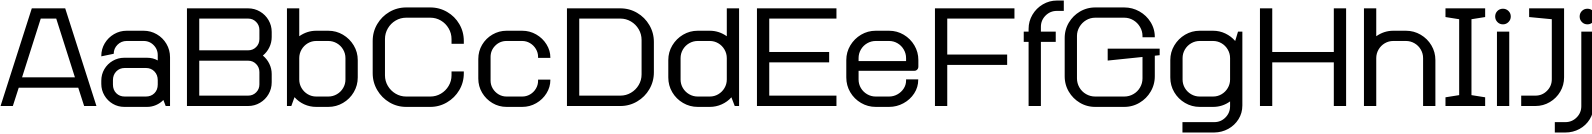 Augmento Extended Medium Font